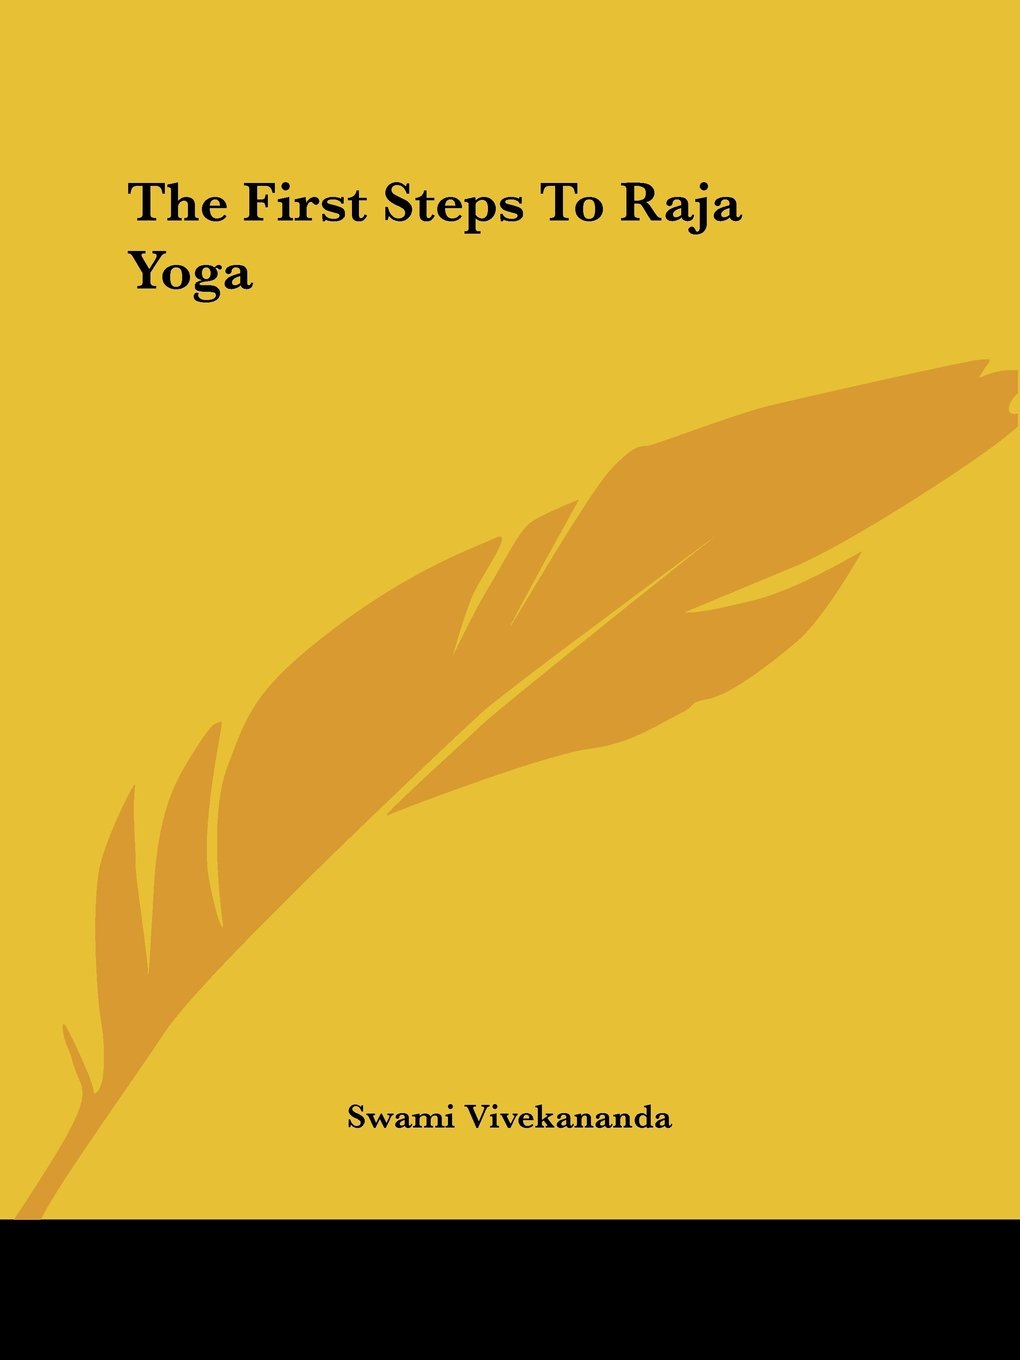 The First Steps to Raja Yoga: Amazon.es: Swami Vivekananda ...